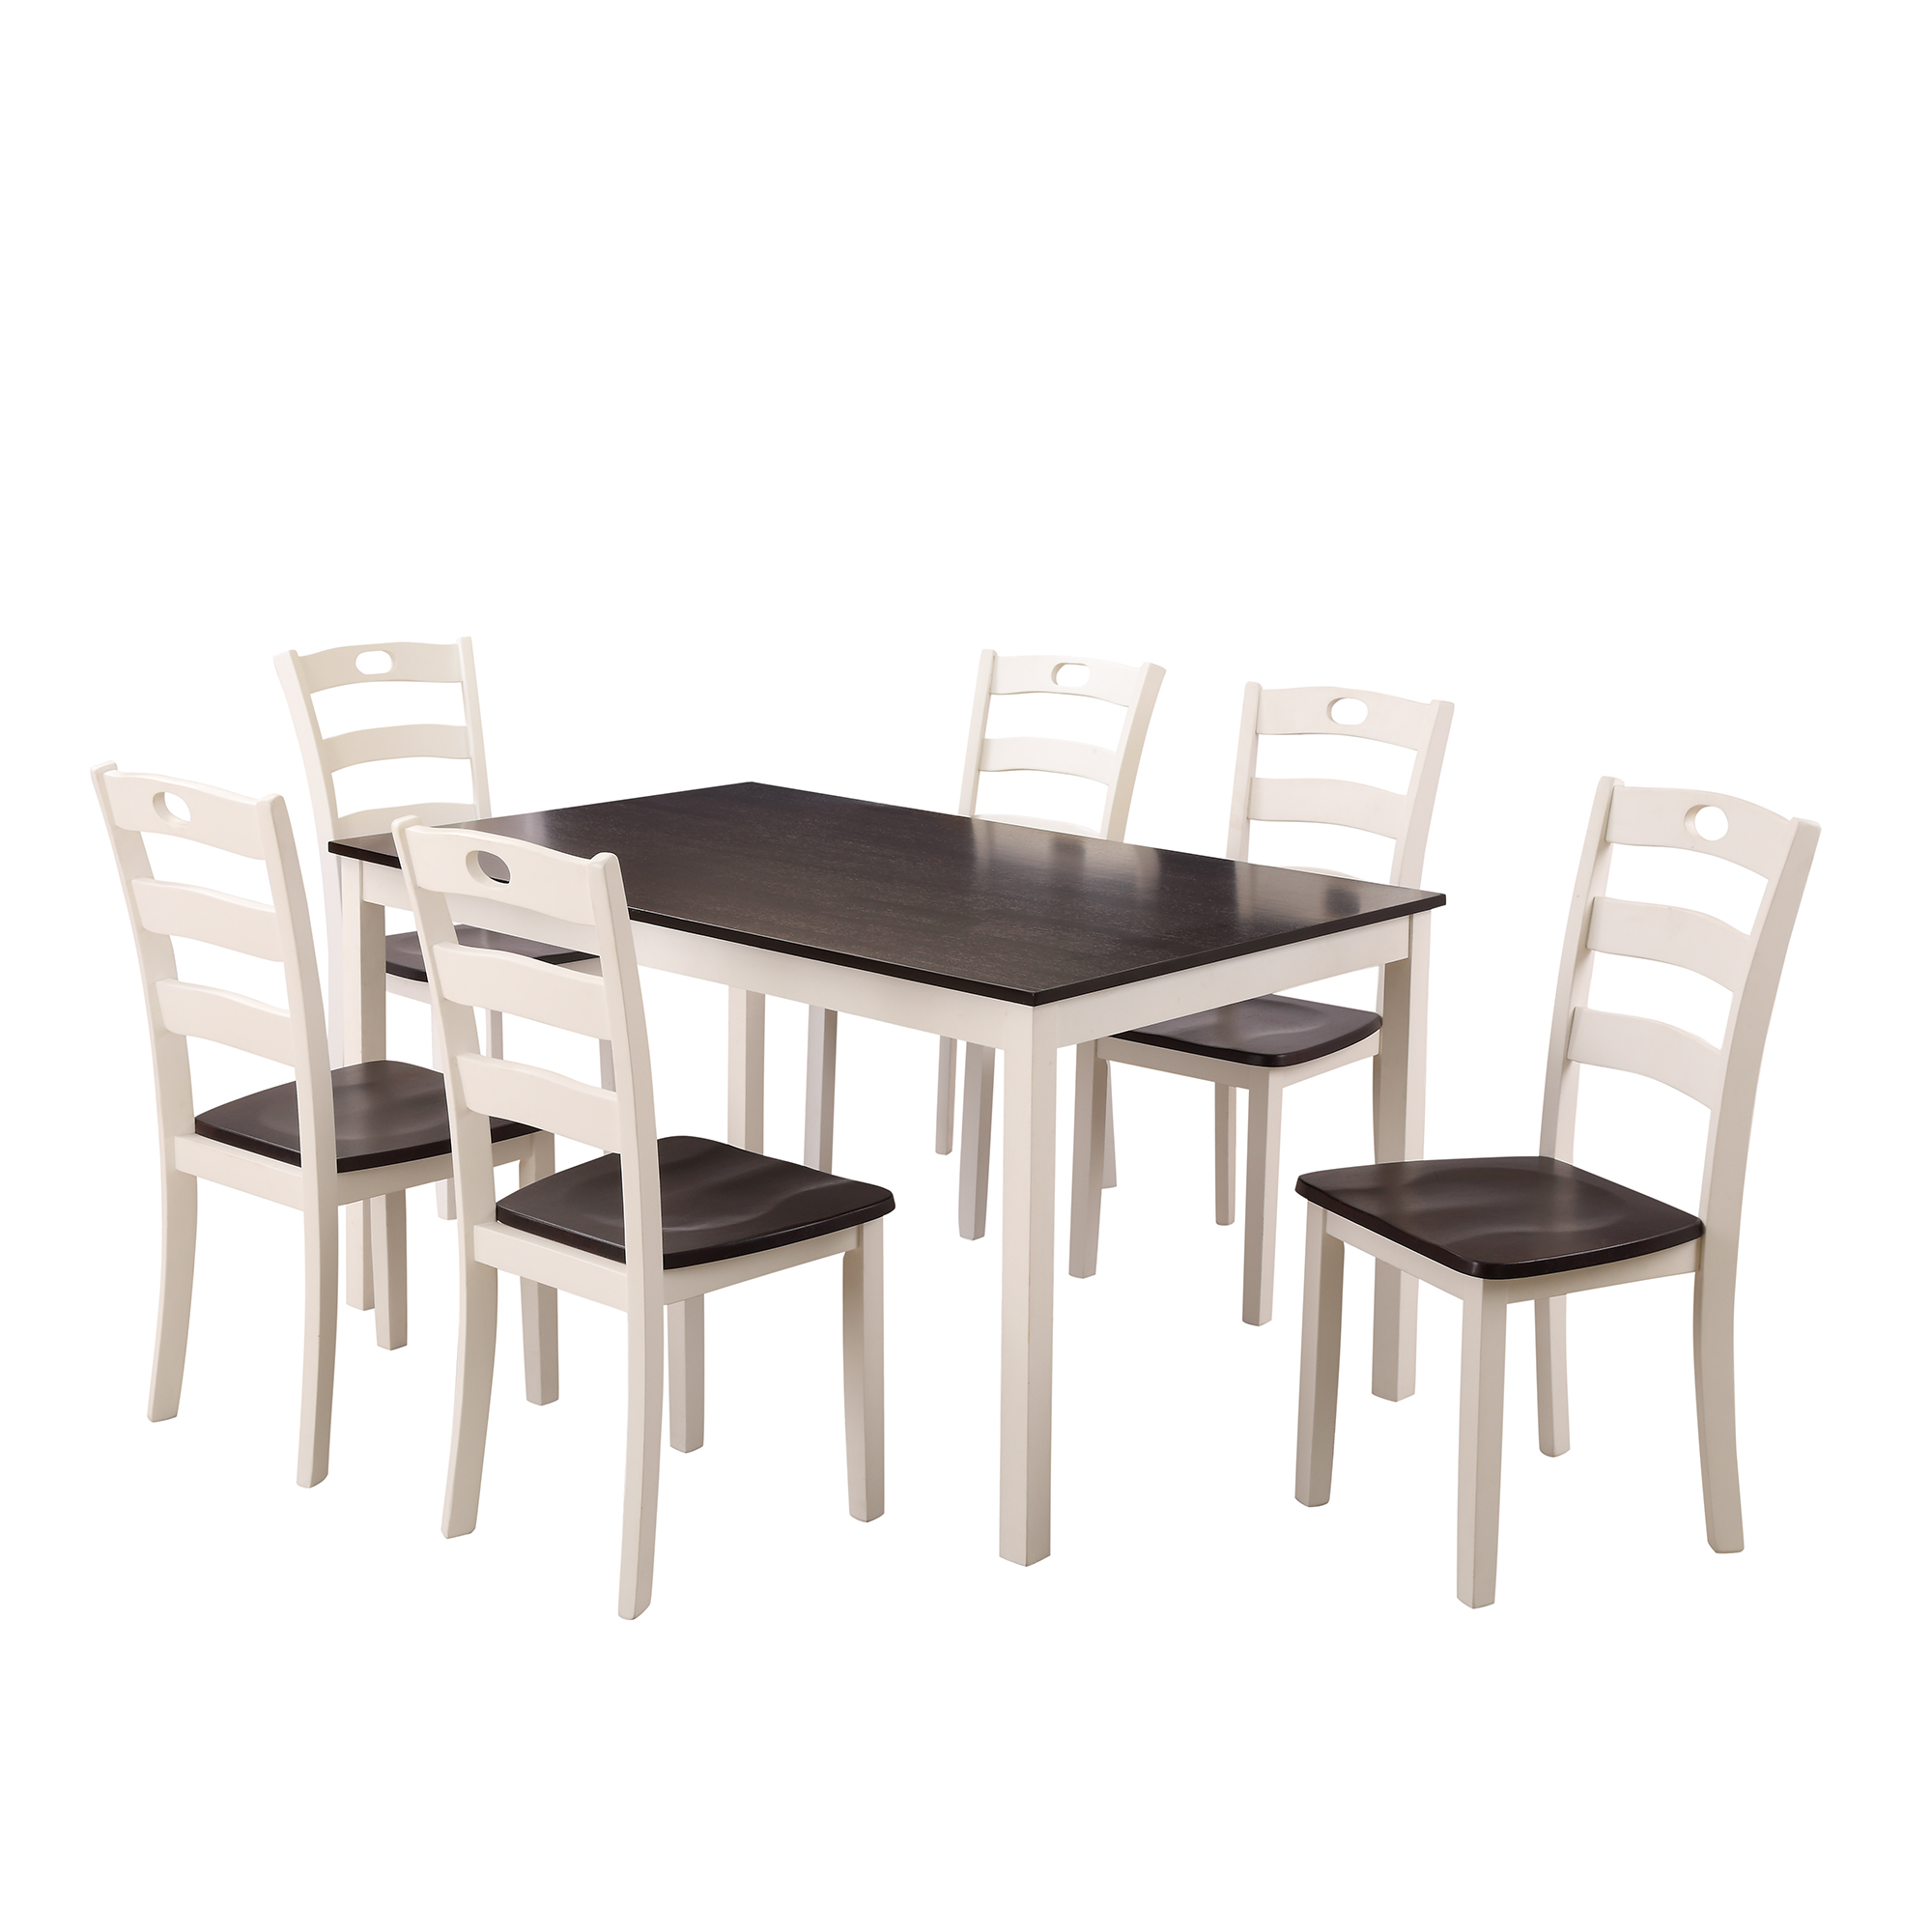 clearance dining table set with 6 chairs 7 piece wooden on dining room sets on clearance id=75032